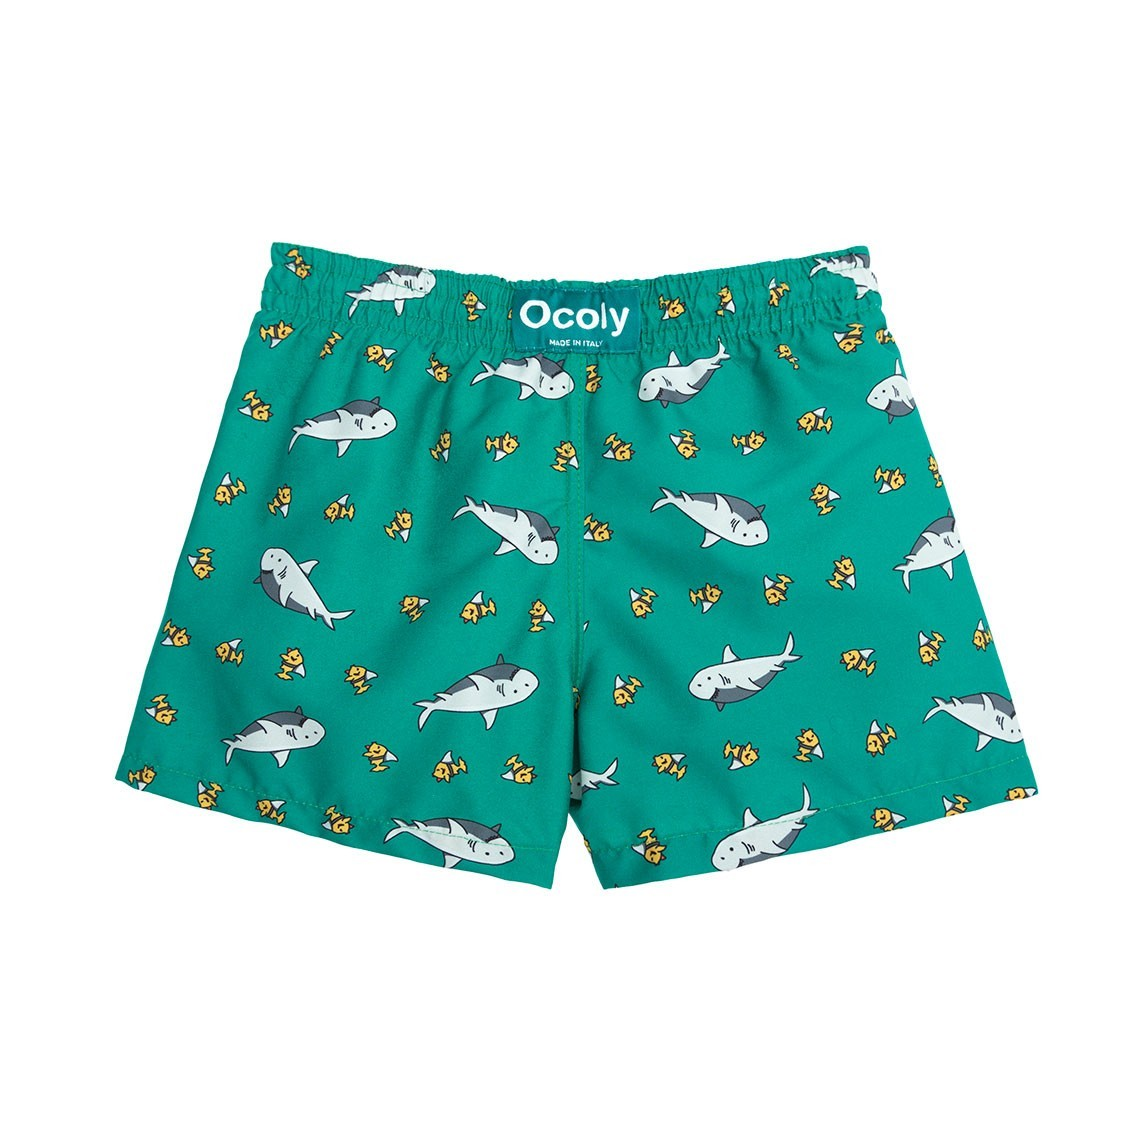 786952df11 Boy Swim short Green Sharks 2 to 4 years - Ocoly